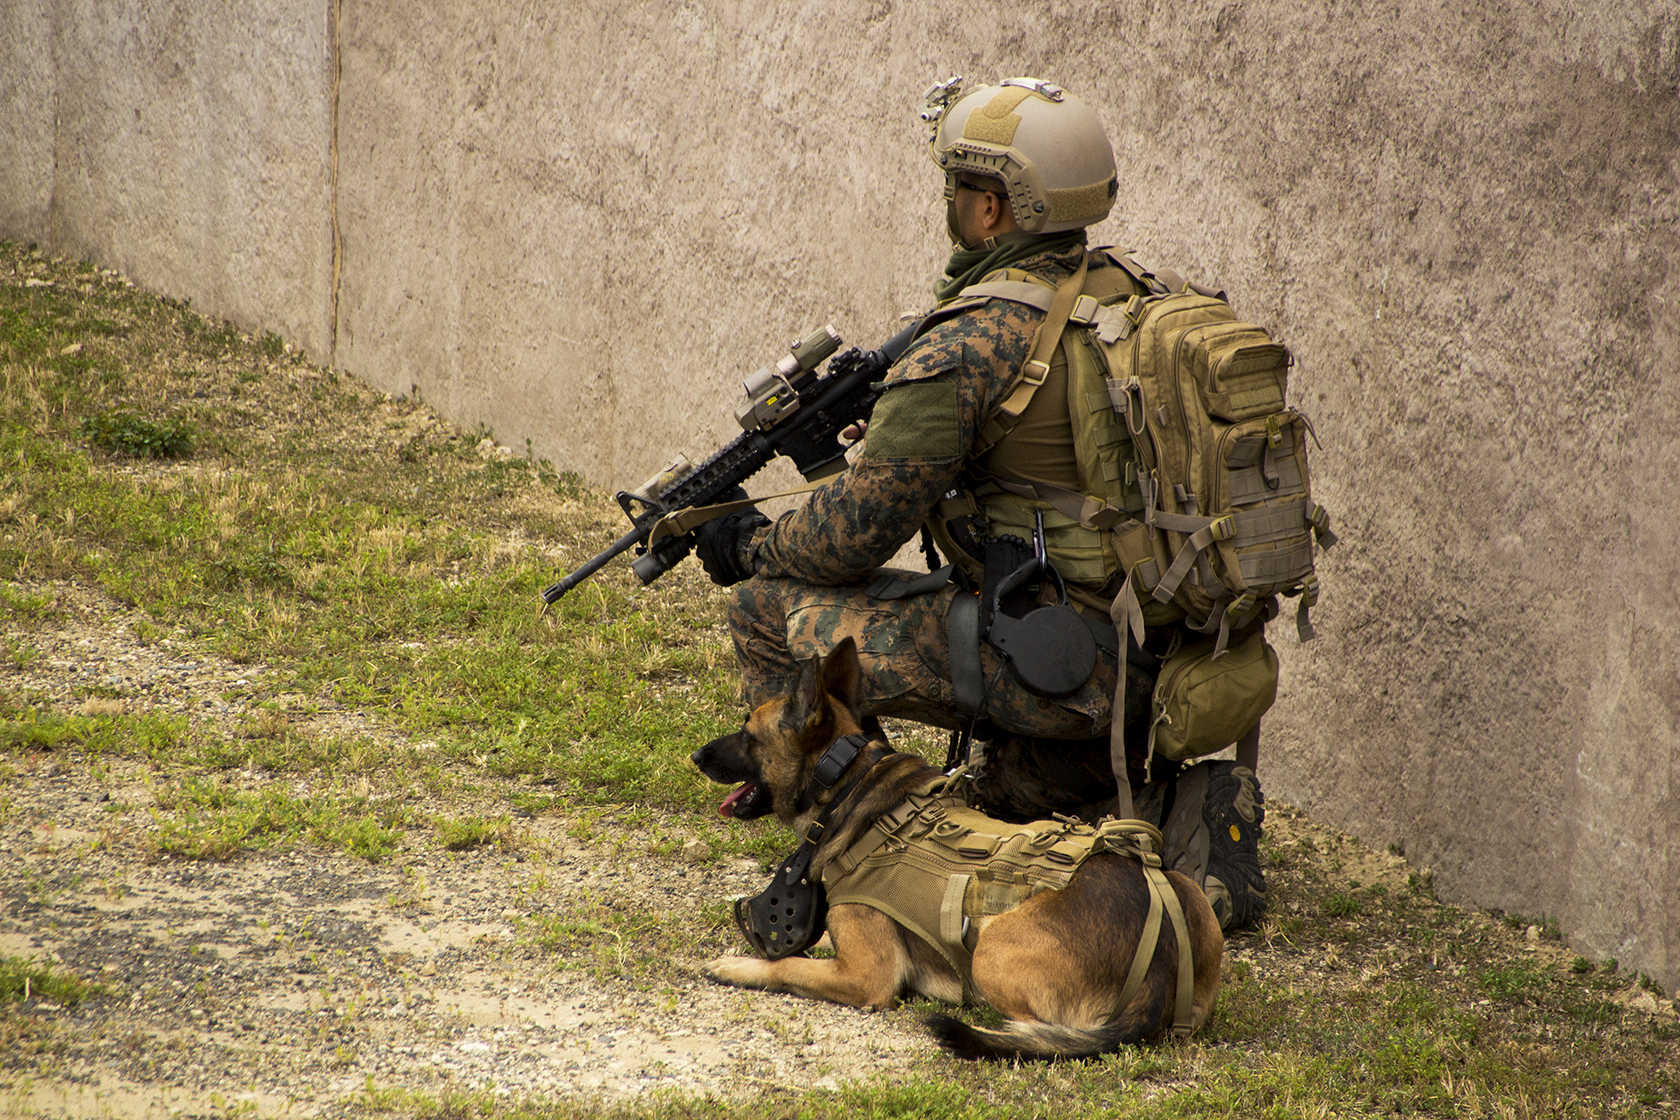 File:Special operations forces raid town during RIMPAC ...